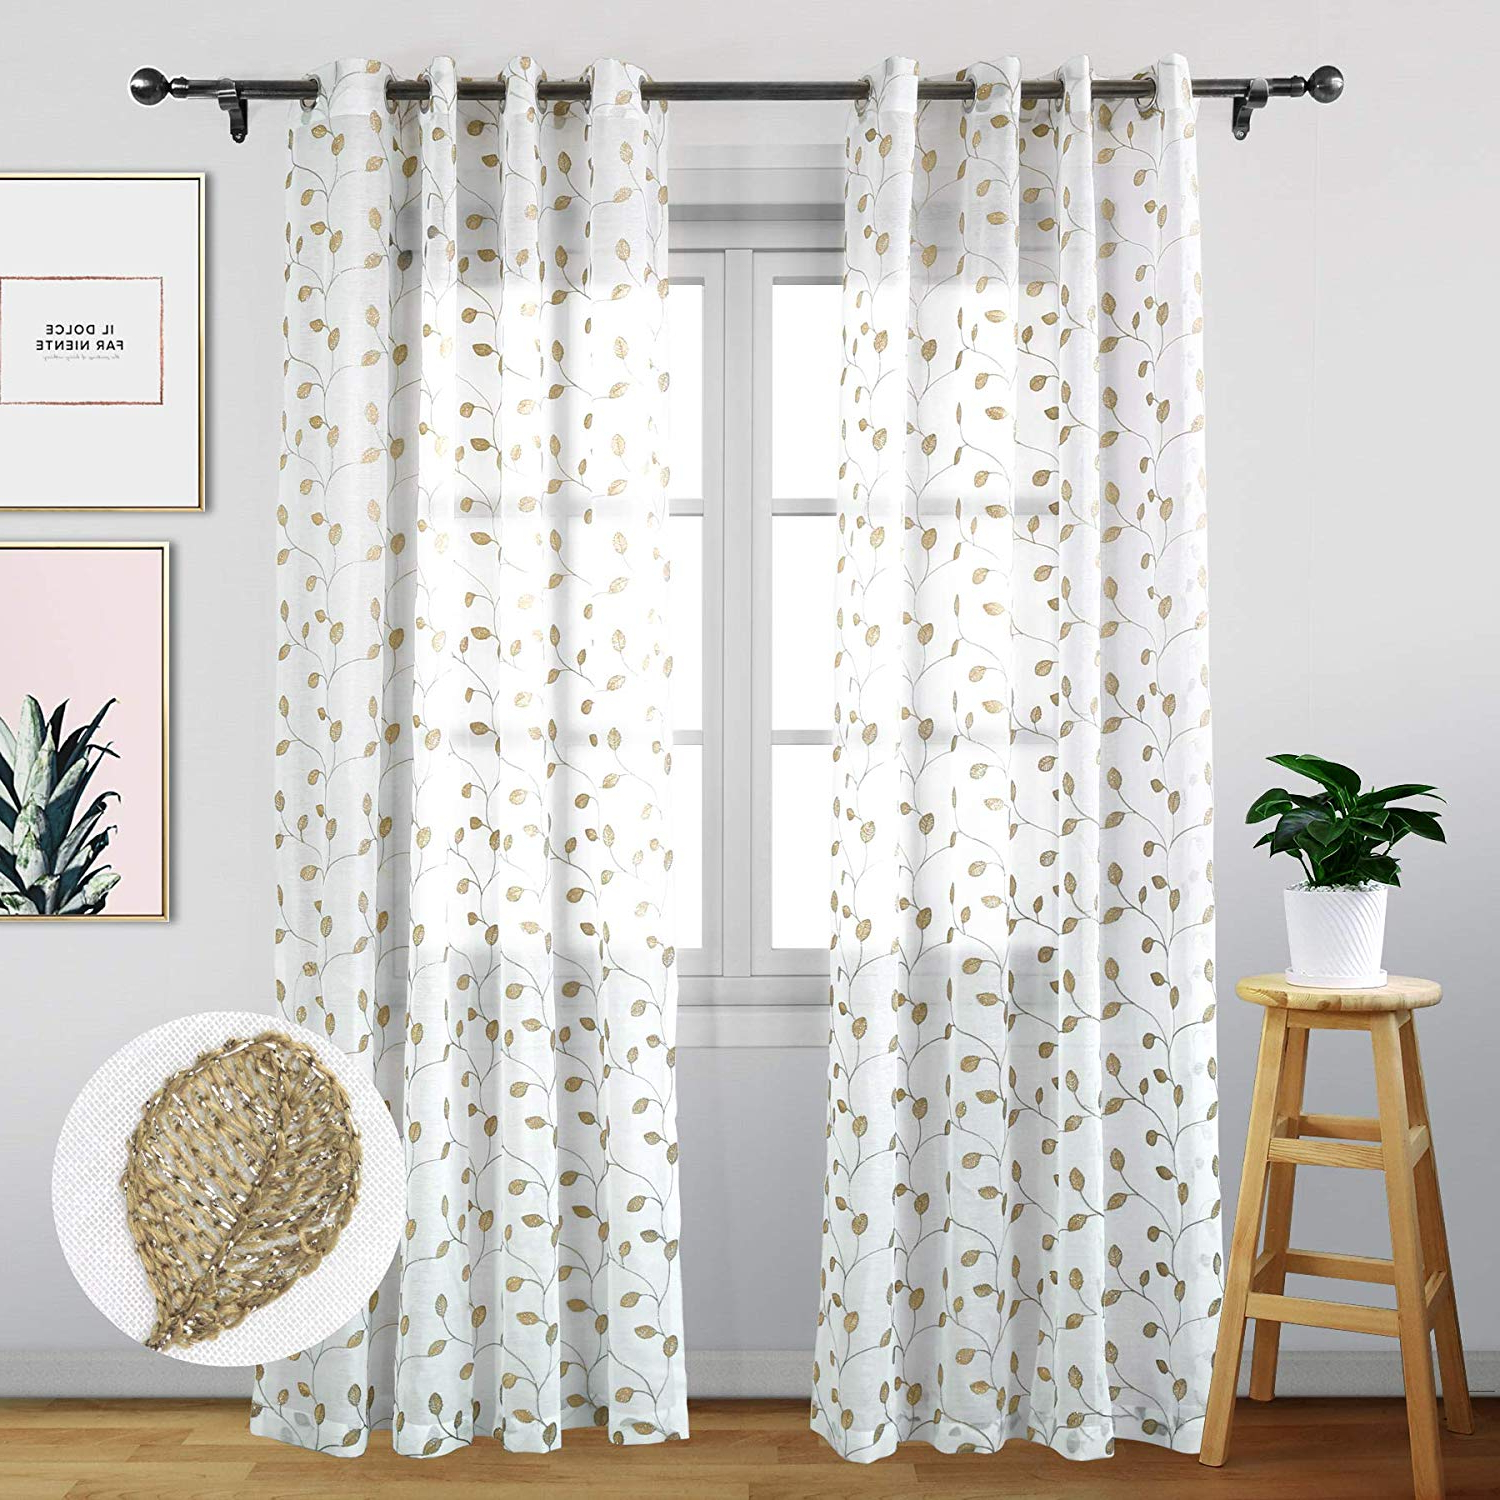 Latest Eamior Sheer Curtains 72 Inches Long – Floral Embroidered Voile Sheer  Curtain Panels With Grommet Top For Living Room (Set Of Two, W52 X L72,  Gold Inside Wavy Leaves Embroidered Sheer Extra Wide Grommet Curtain Panels (Gallery 17 of 20)